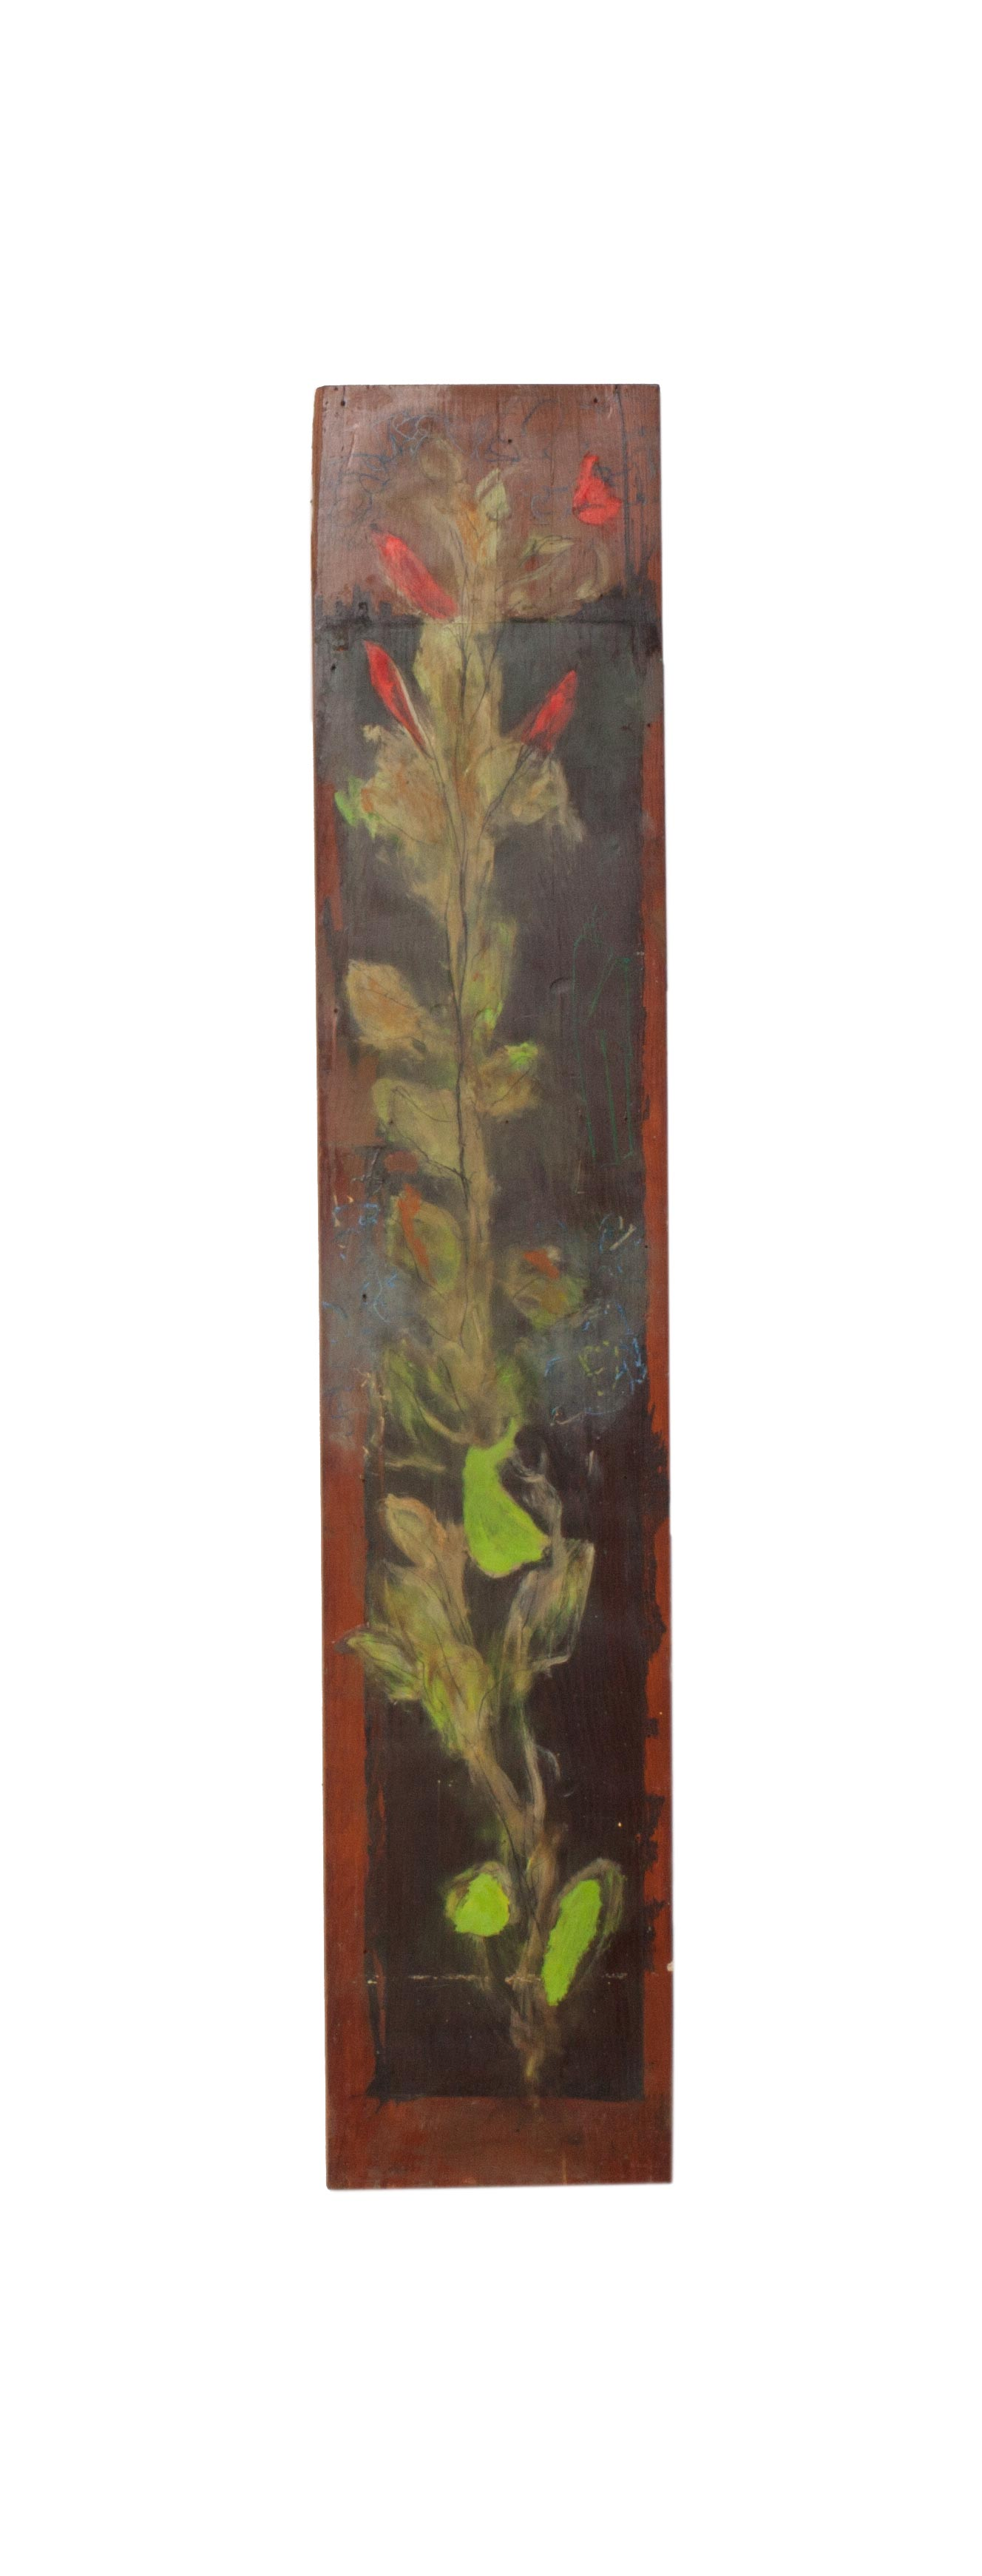 Plank Scape 4